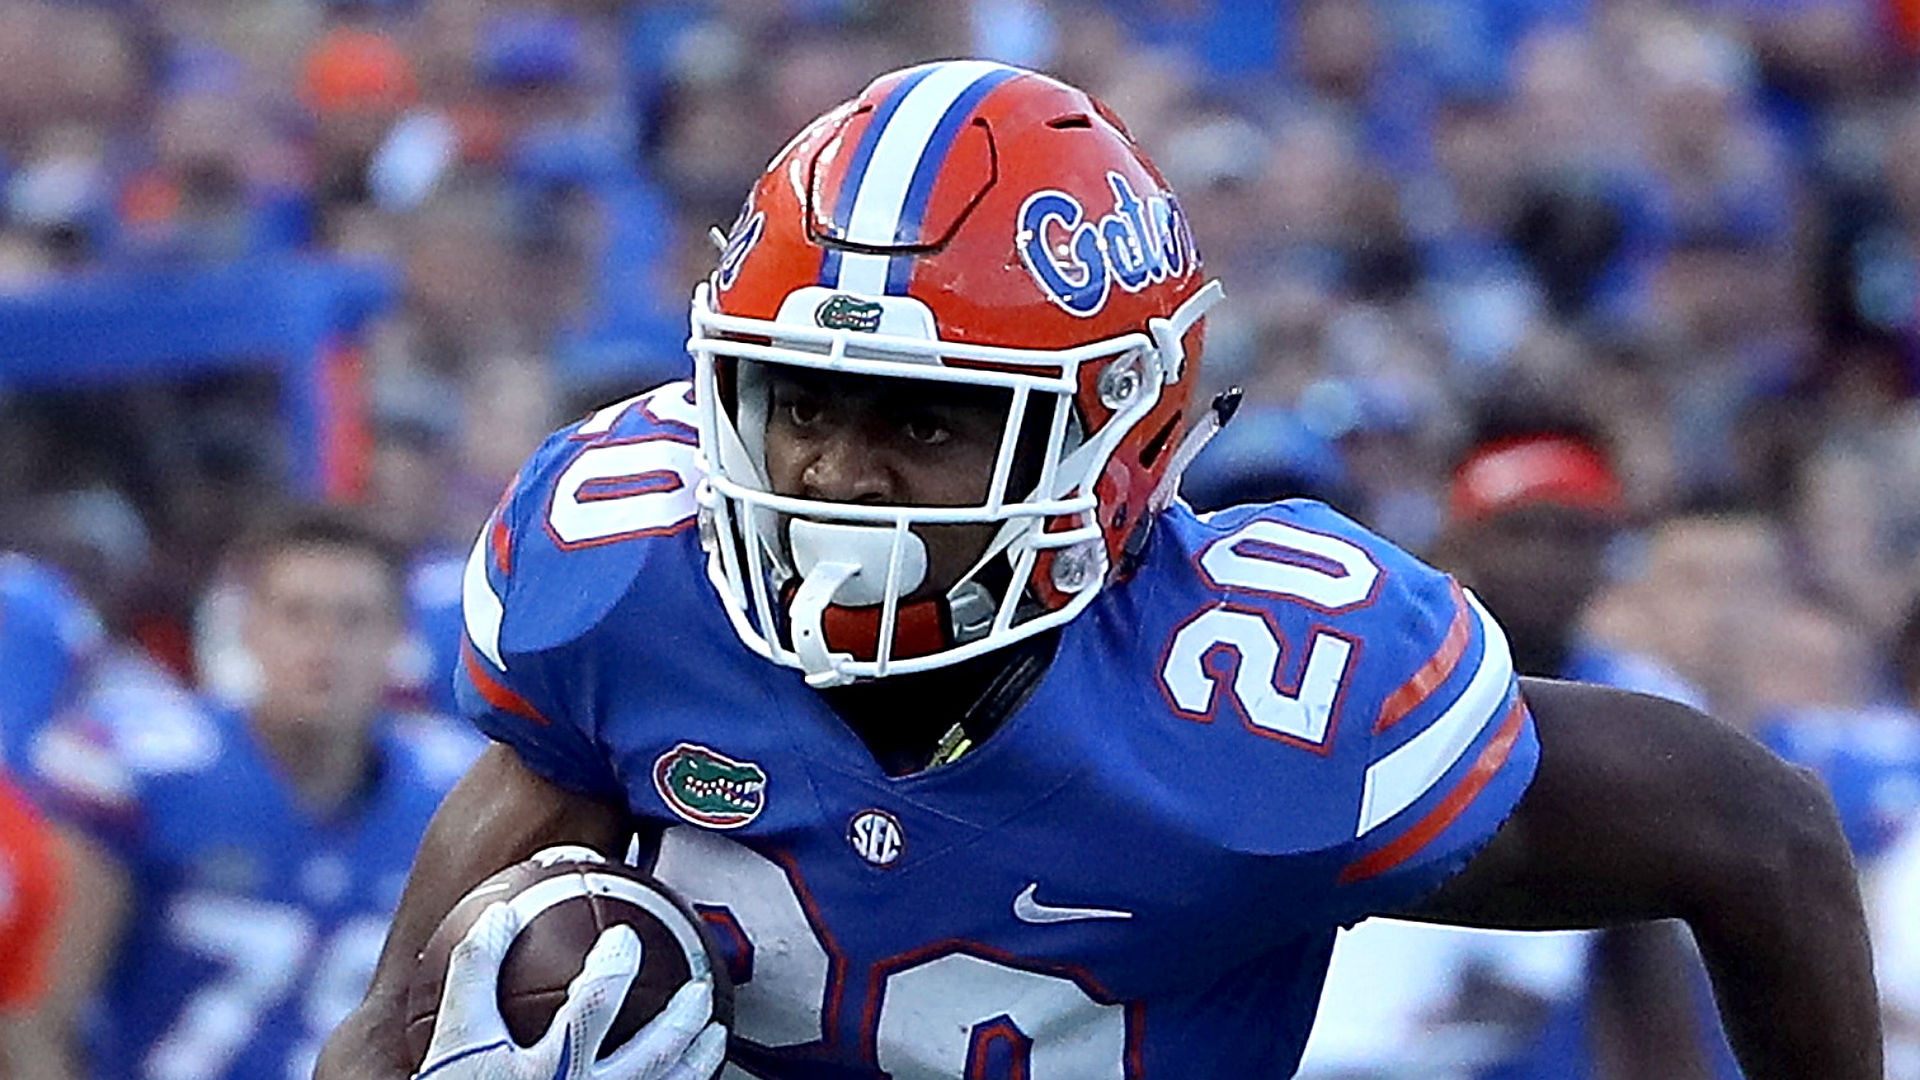 Florida RB Malik Davis out for season with knee injury, report says